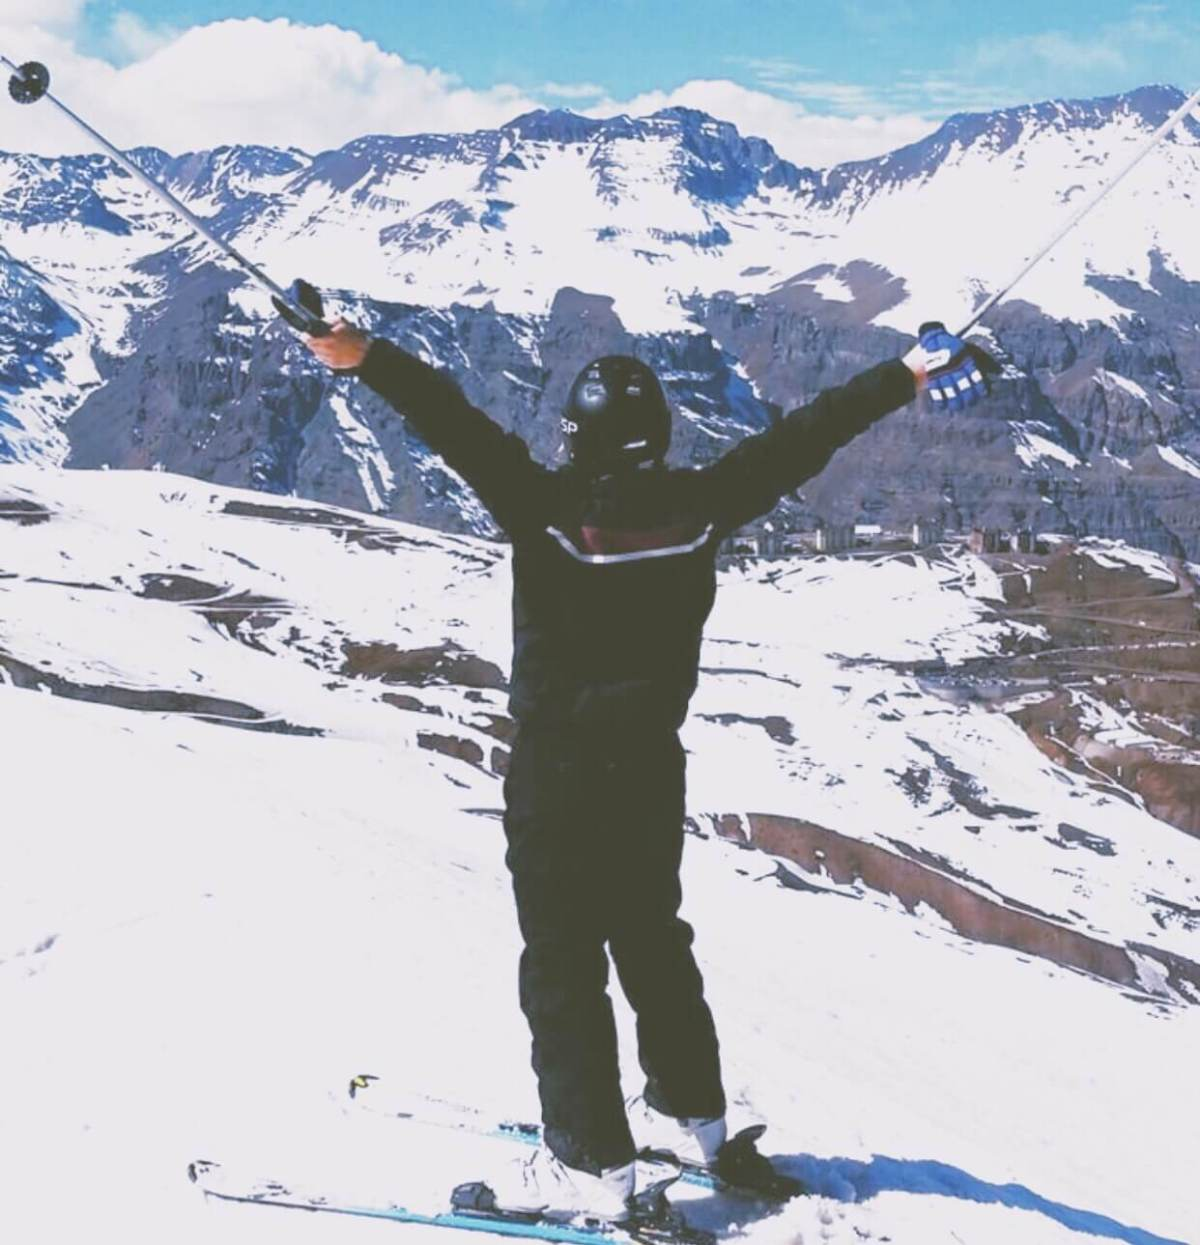 Skiing in Chile | Gift Experiences: Ski Hill Tickets